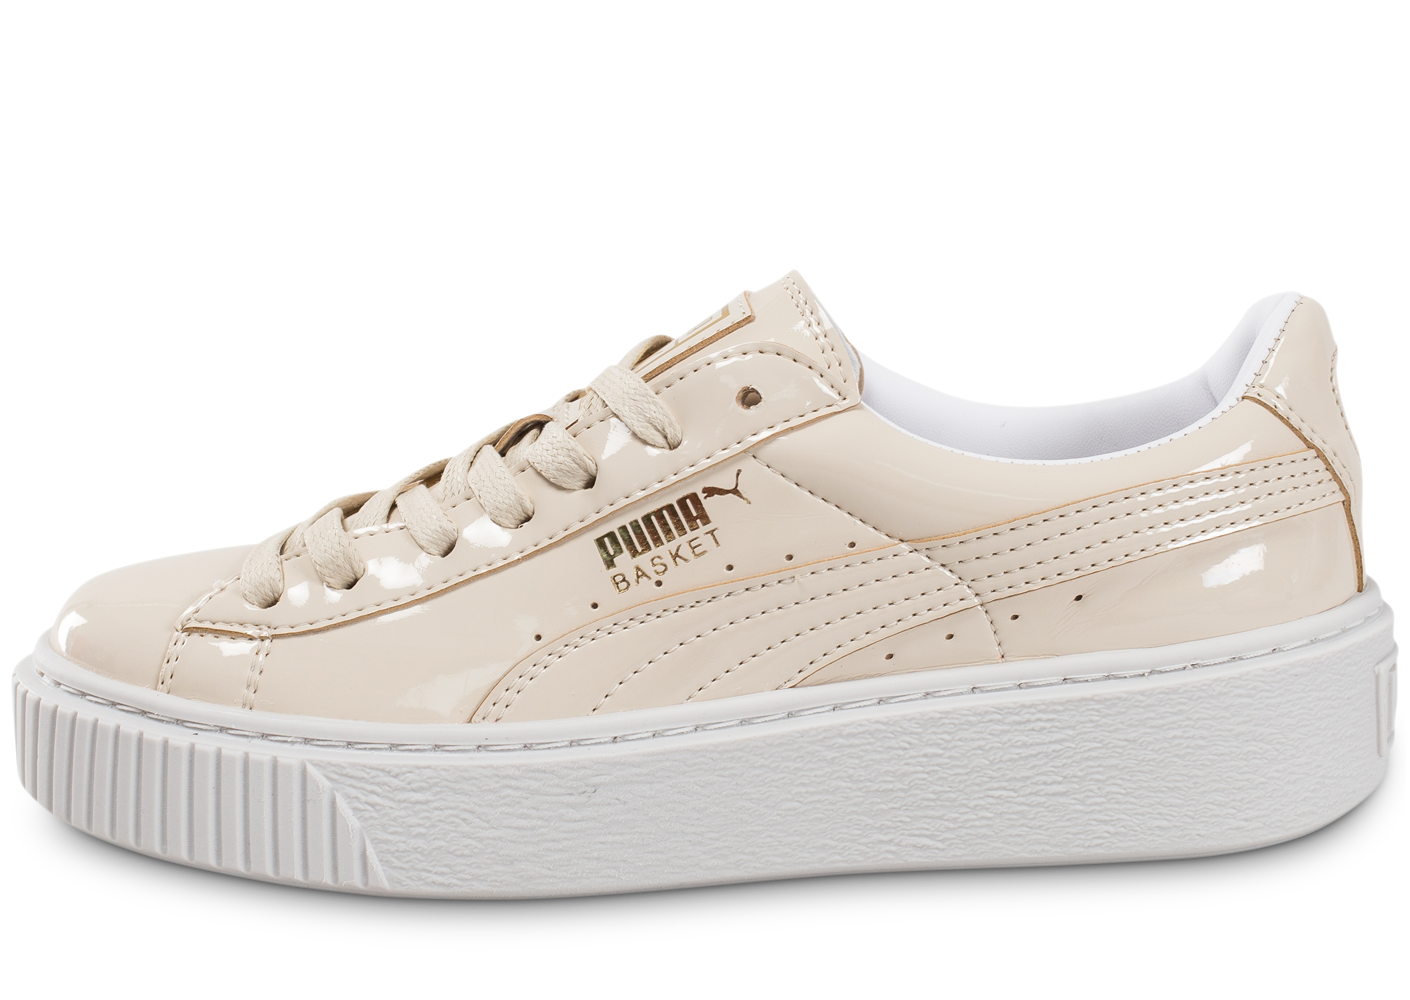 Puma Femme Chaussures Puma Chaussures Femme 7wd476 rxBCoWde